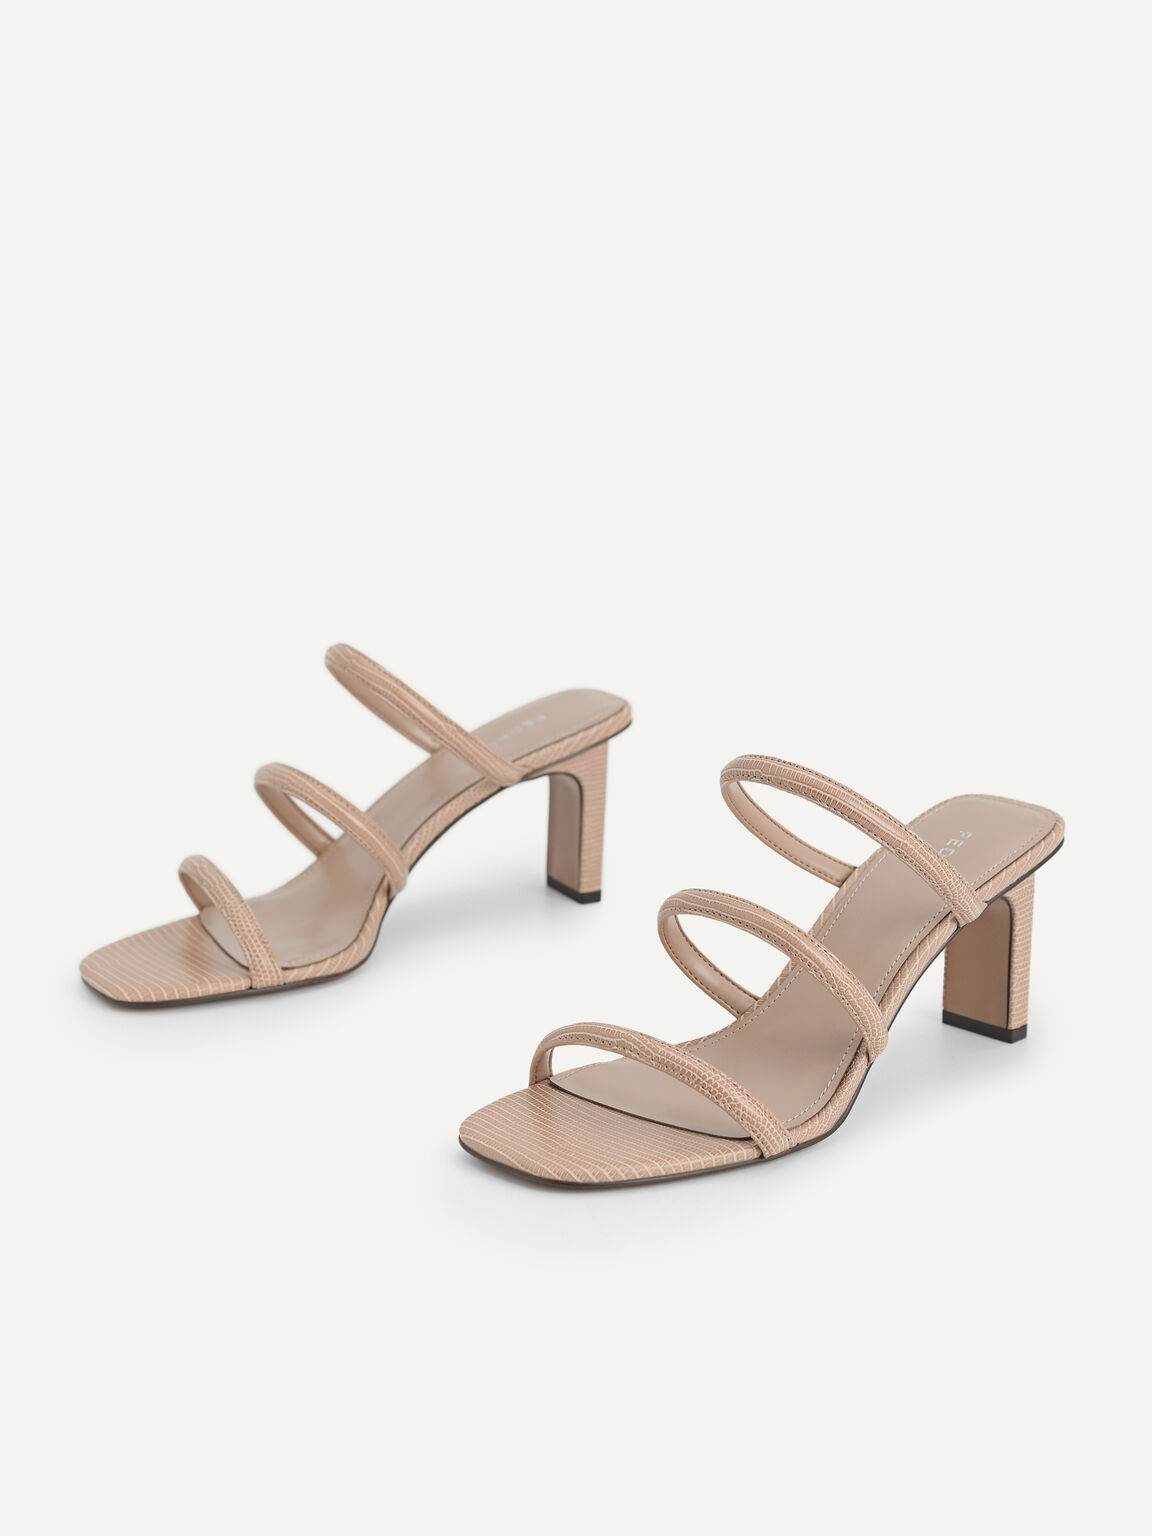 Strappy Heeled Lizard-Effect Sandals, Taupe, hi-res